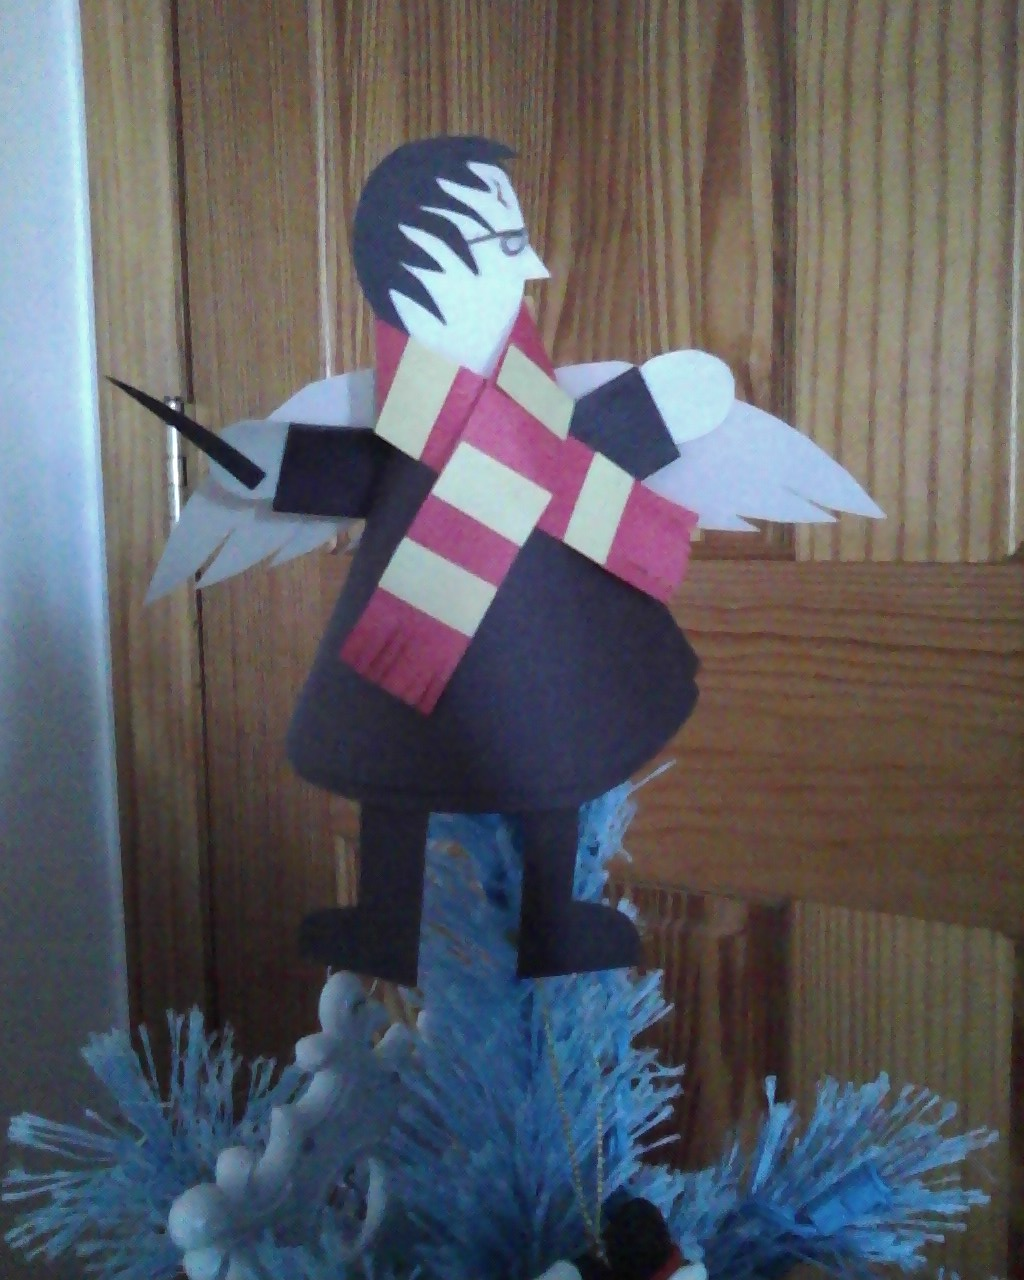 Harry Potter Christmas Tree Topper: Exfanding Your Horizons: Mischief Managed